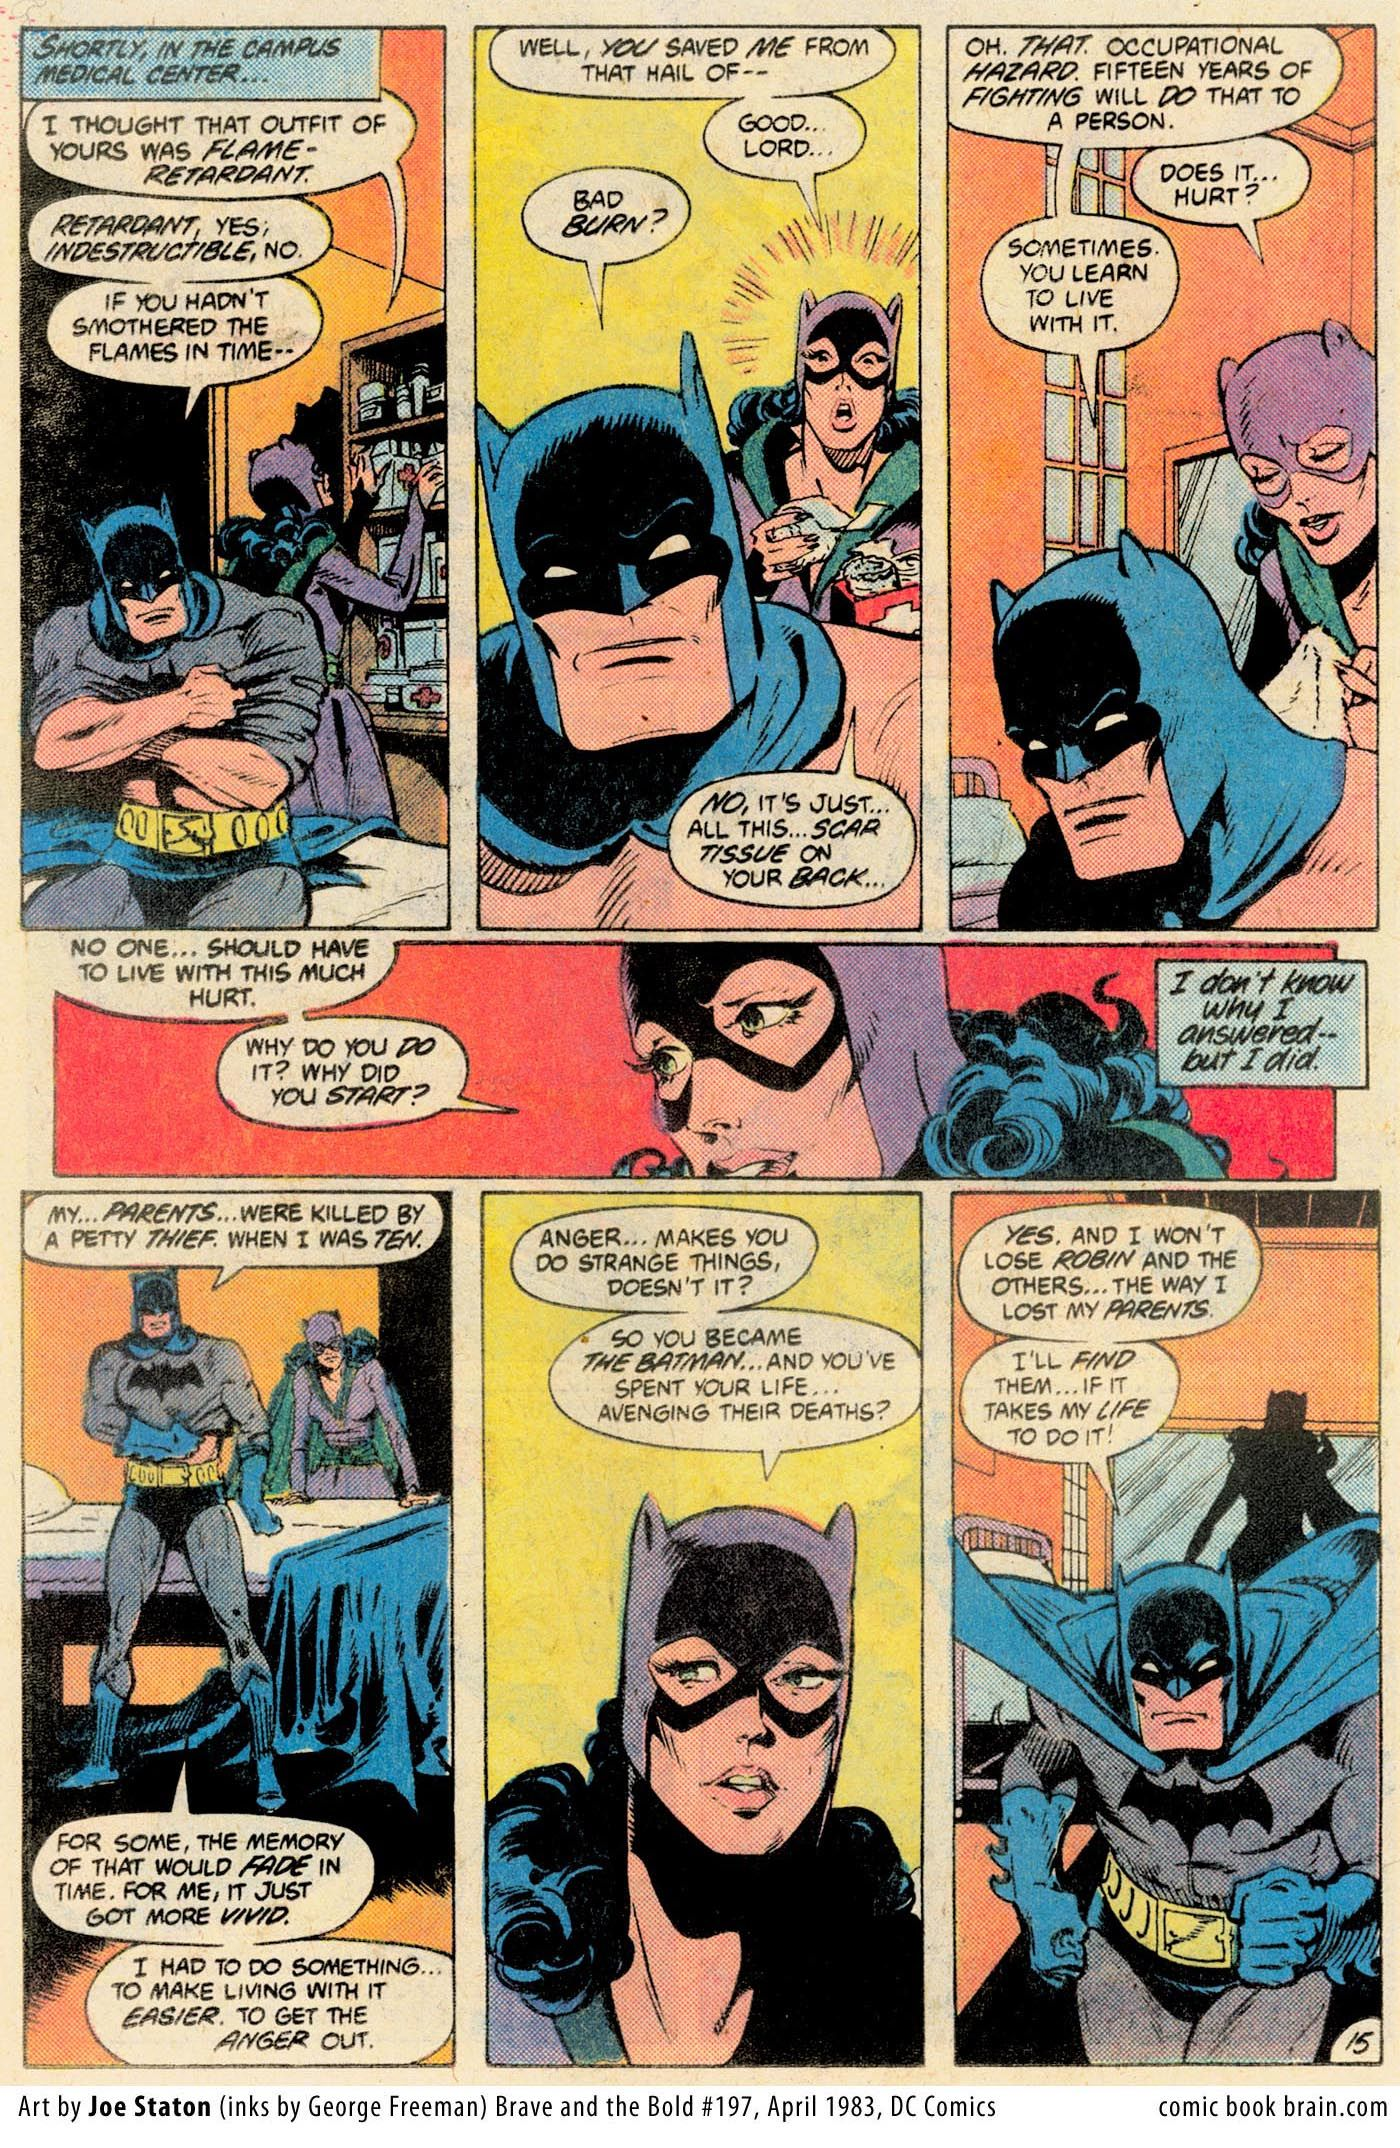 Golden Age Earth 2 Batman And Catwoman By Joe Staton From The